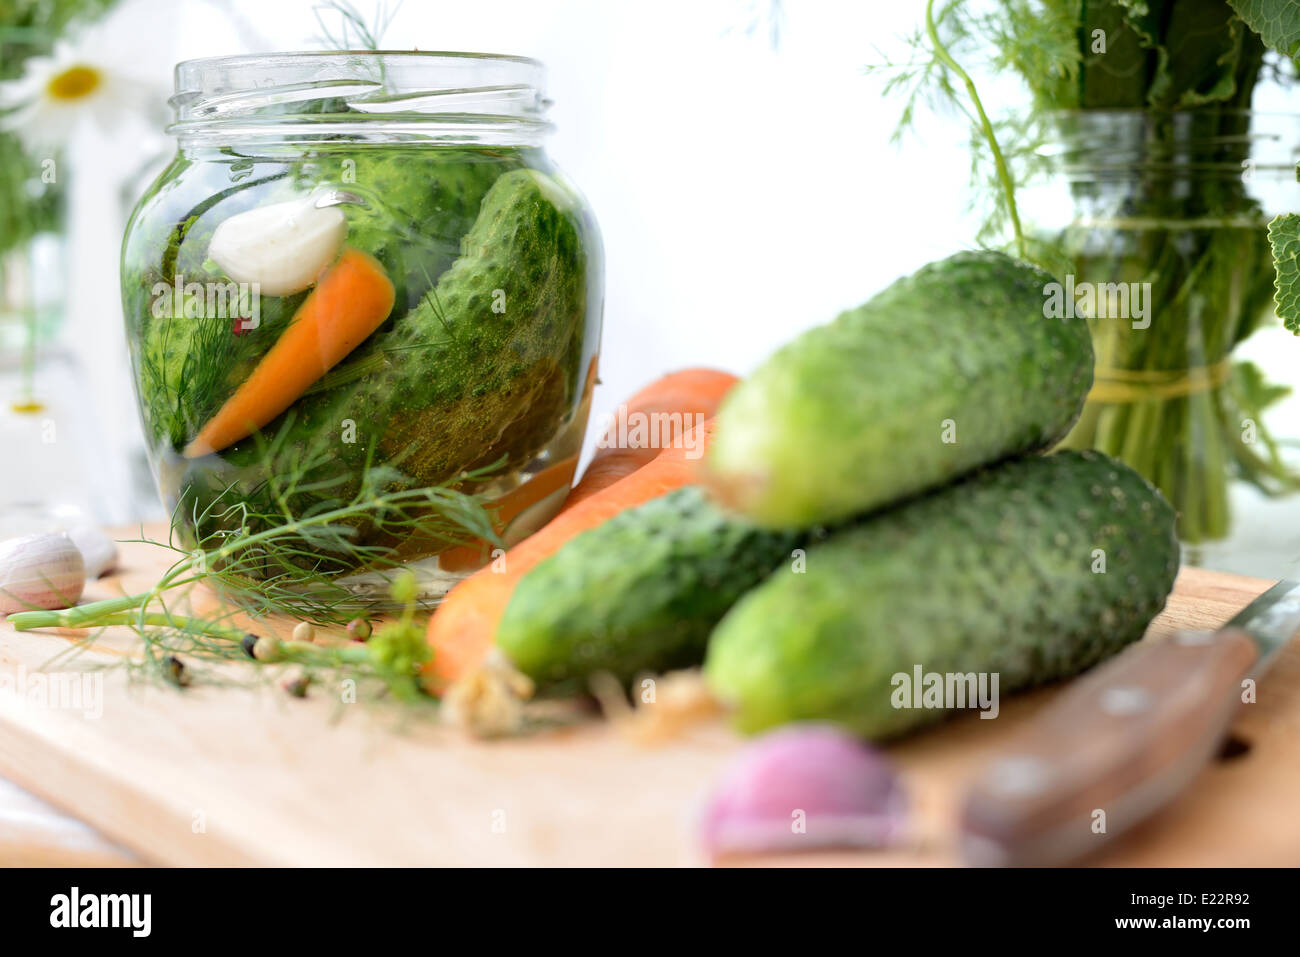 Fresh cucumbers in the jar, just filled with brine. - Stock Image